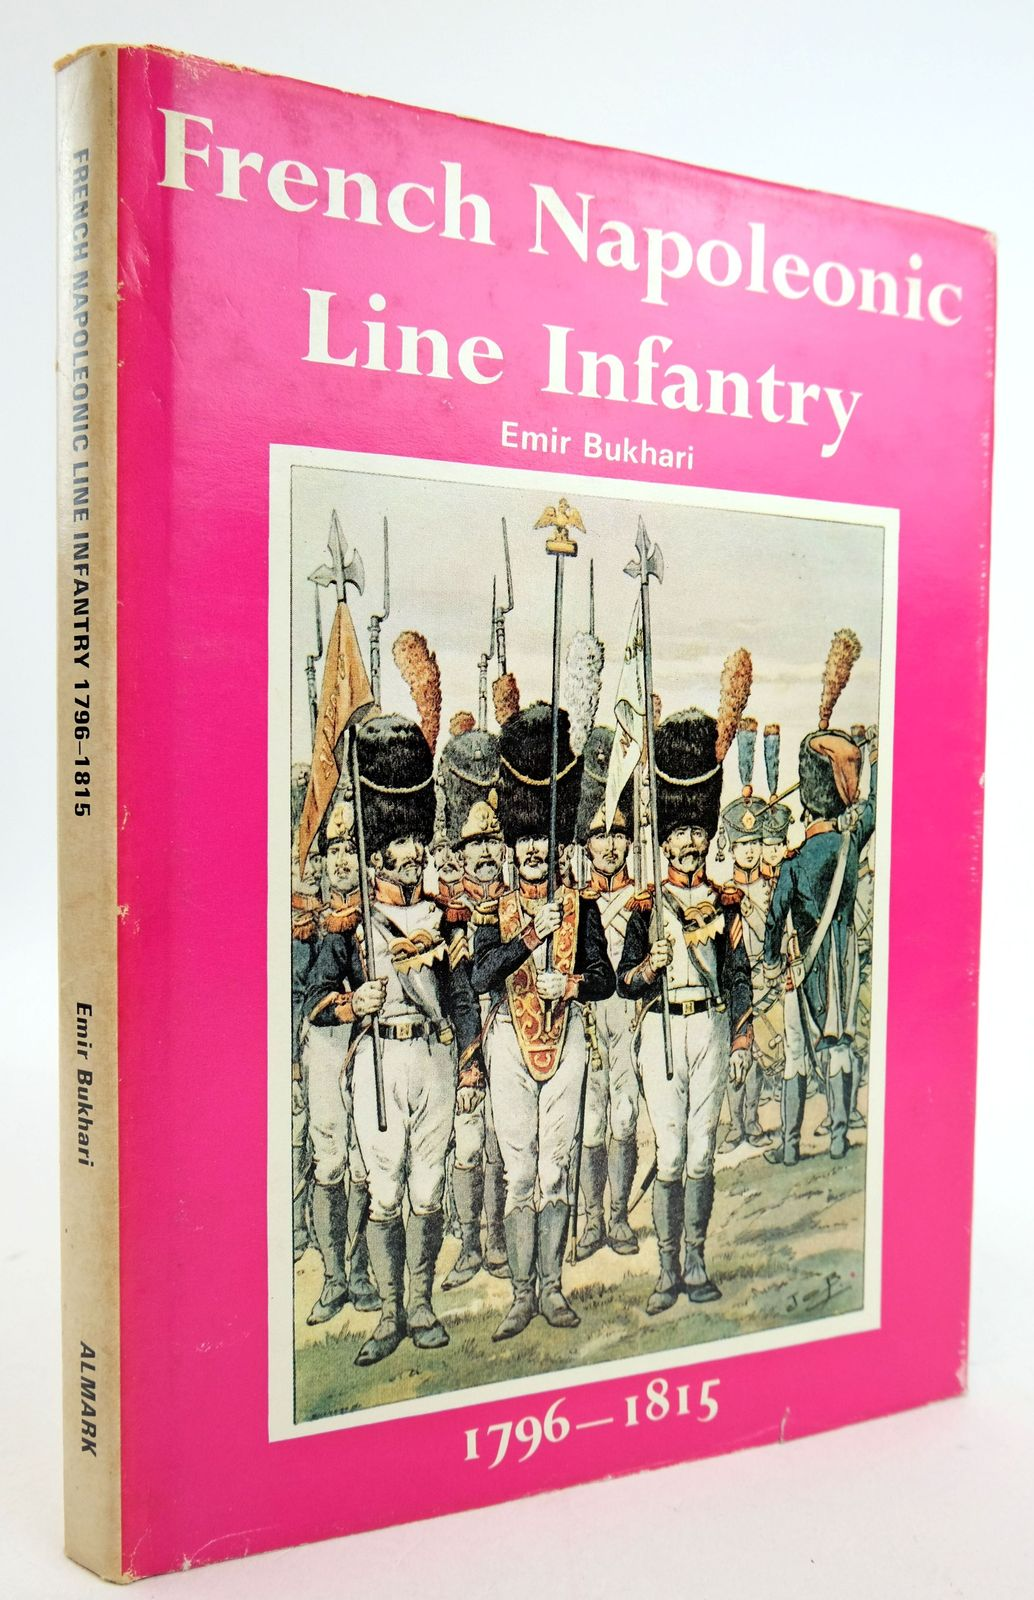 Photo of FRENCH NAPOLEONIC LINE INFANTRY 1796-1815 written by Bukhari, Emir published by Almark Publishing Co. Ltd. (STOCK CODE: 1819740)  for sale by Stella & Rose's Books